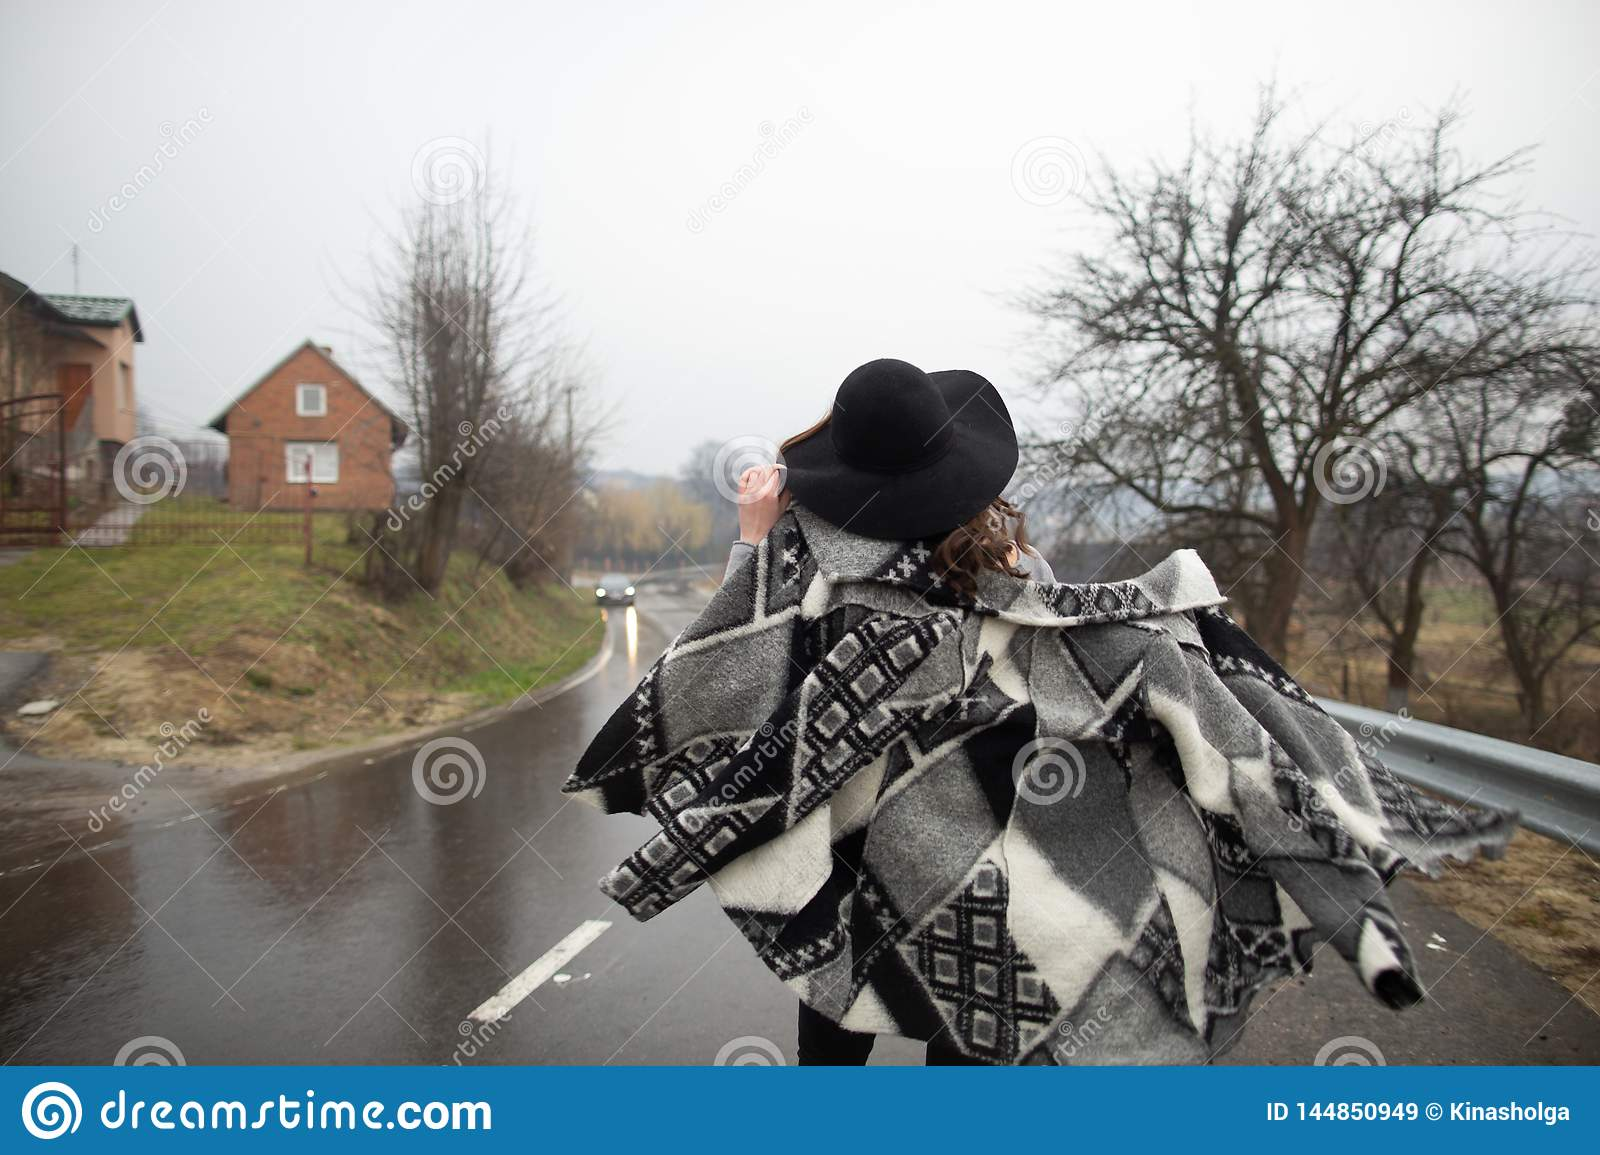 Girl with a black hat walking along the road on a rainy day